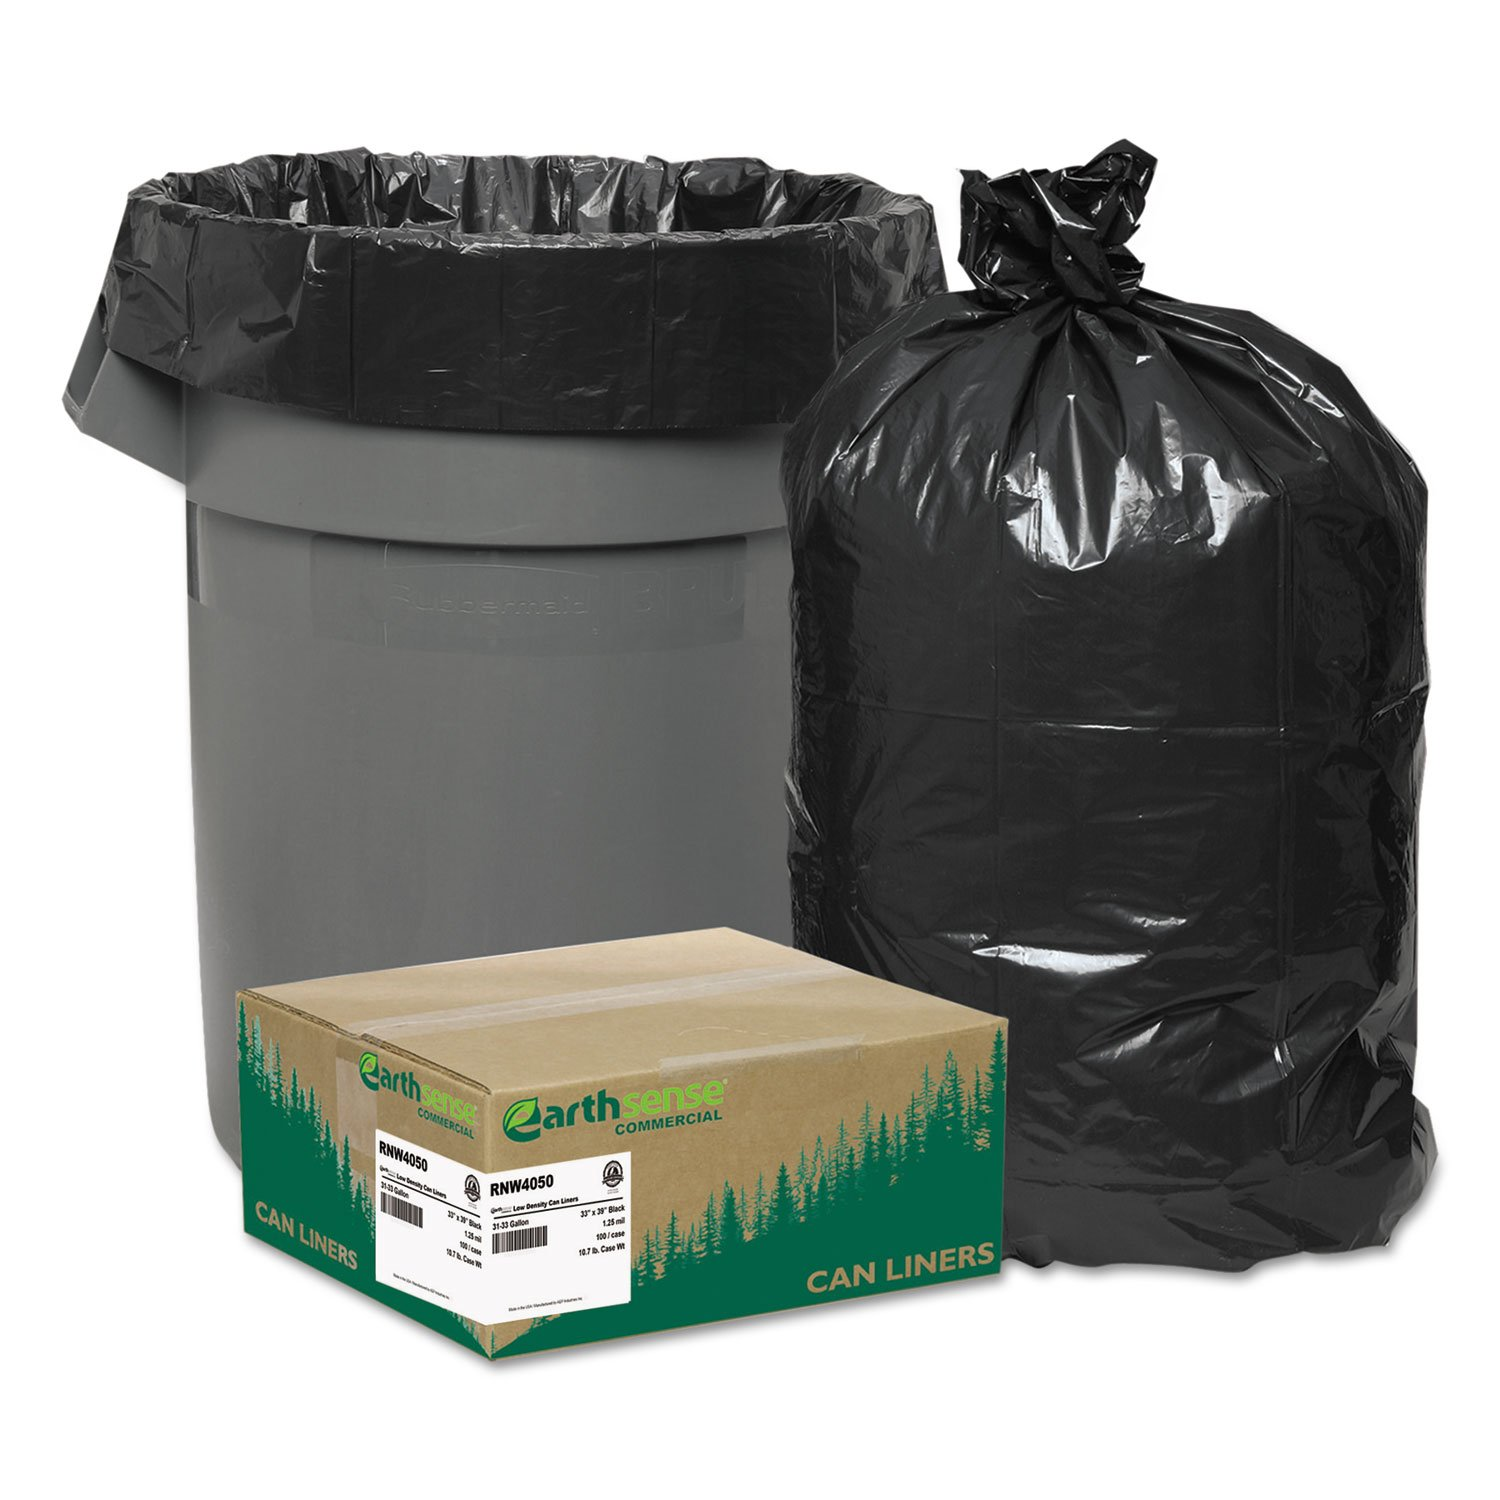 WBIRNW4050 - Webster Earthsense Commercial Can Liner